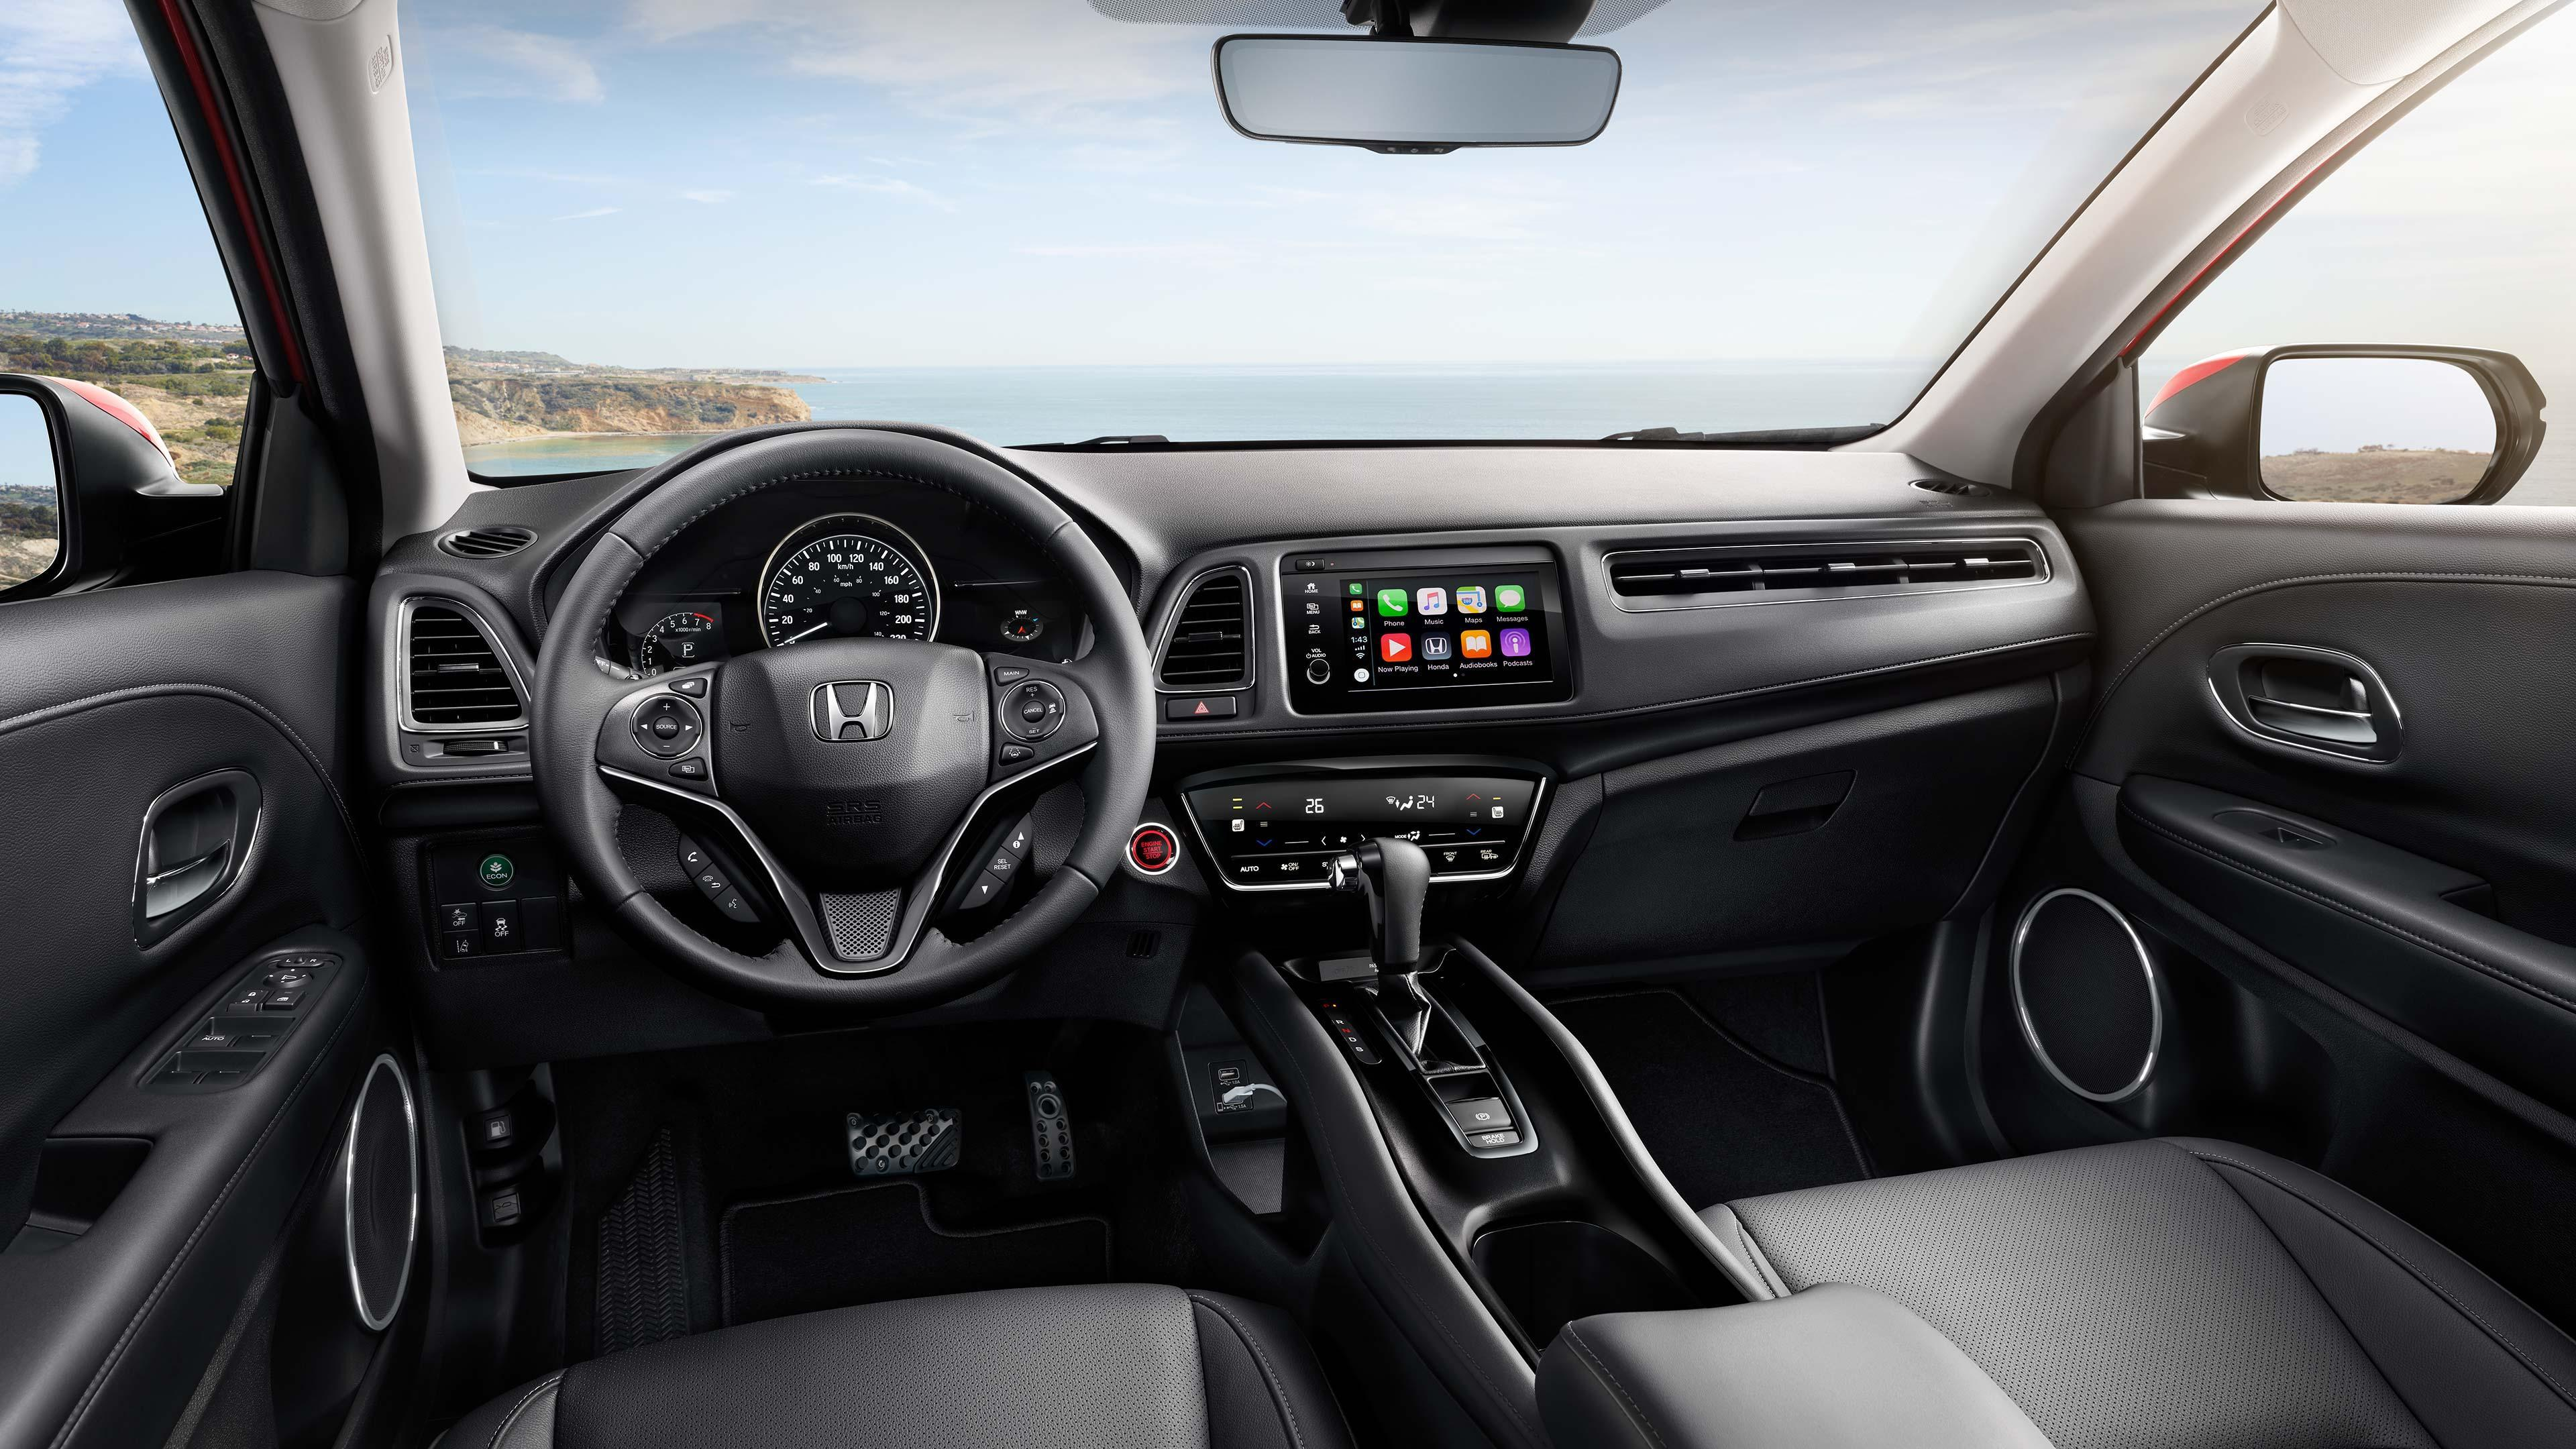 2019 Honda HRV Interior Front View